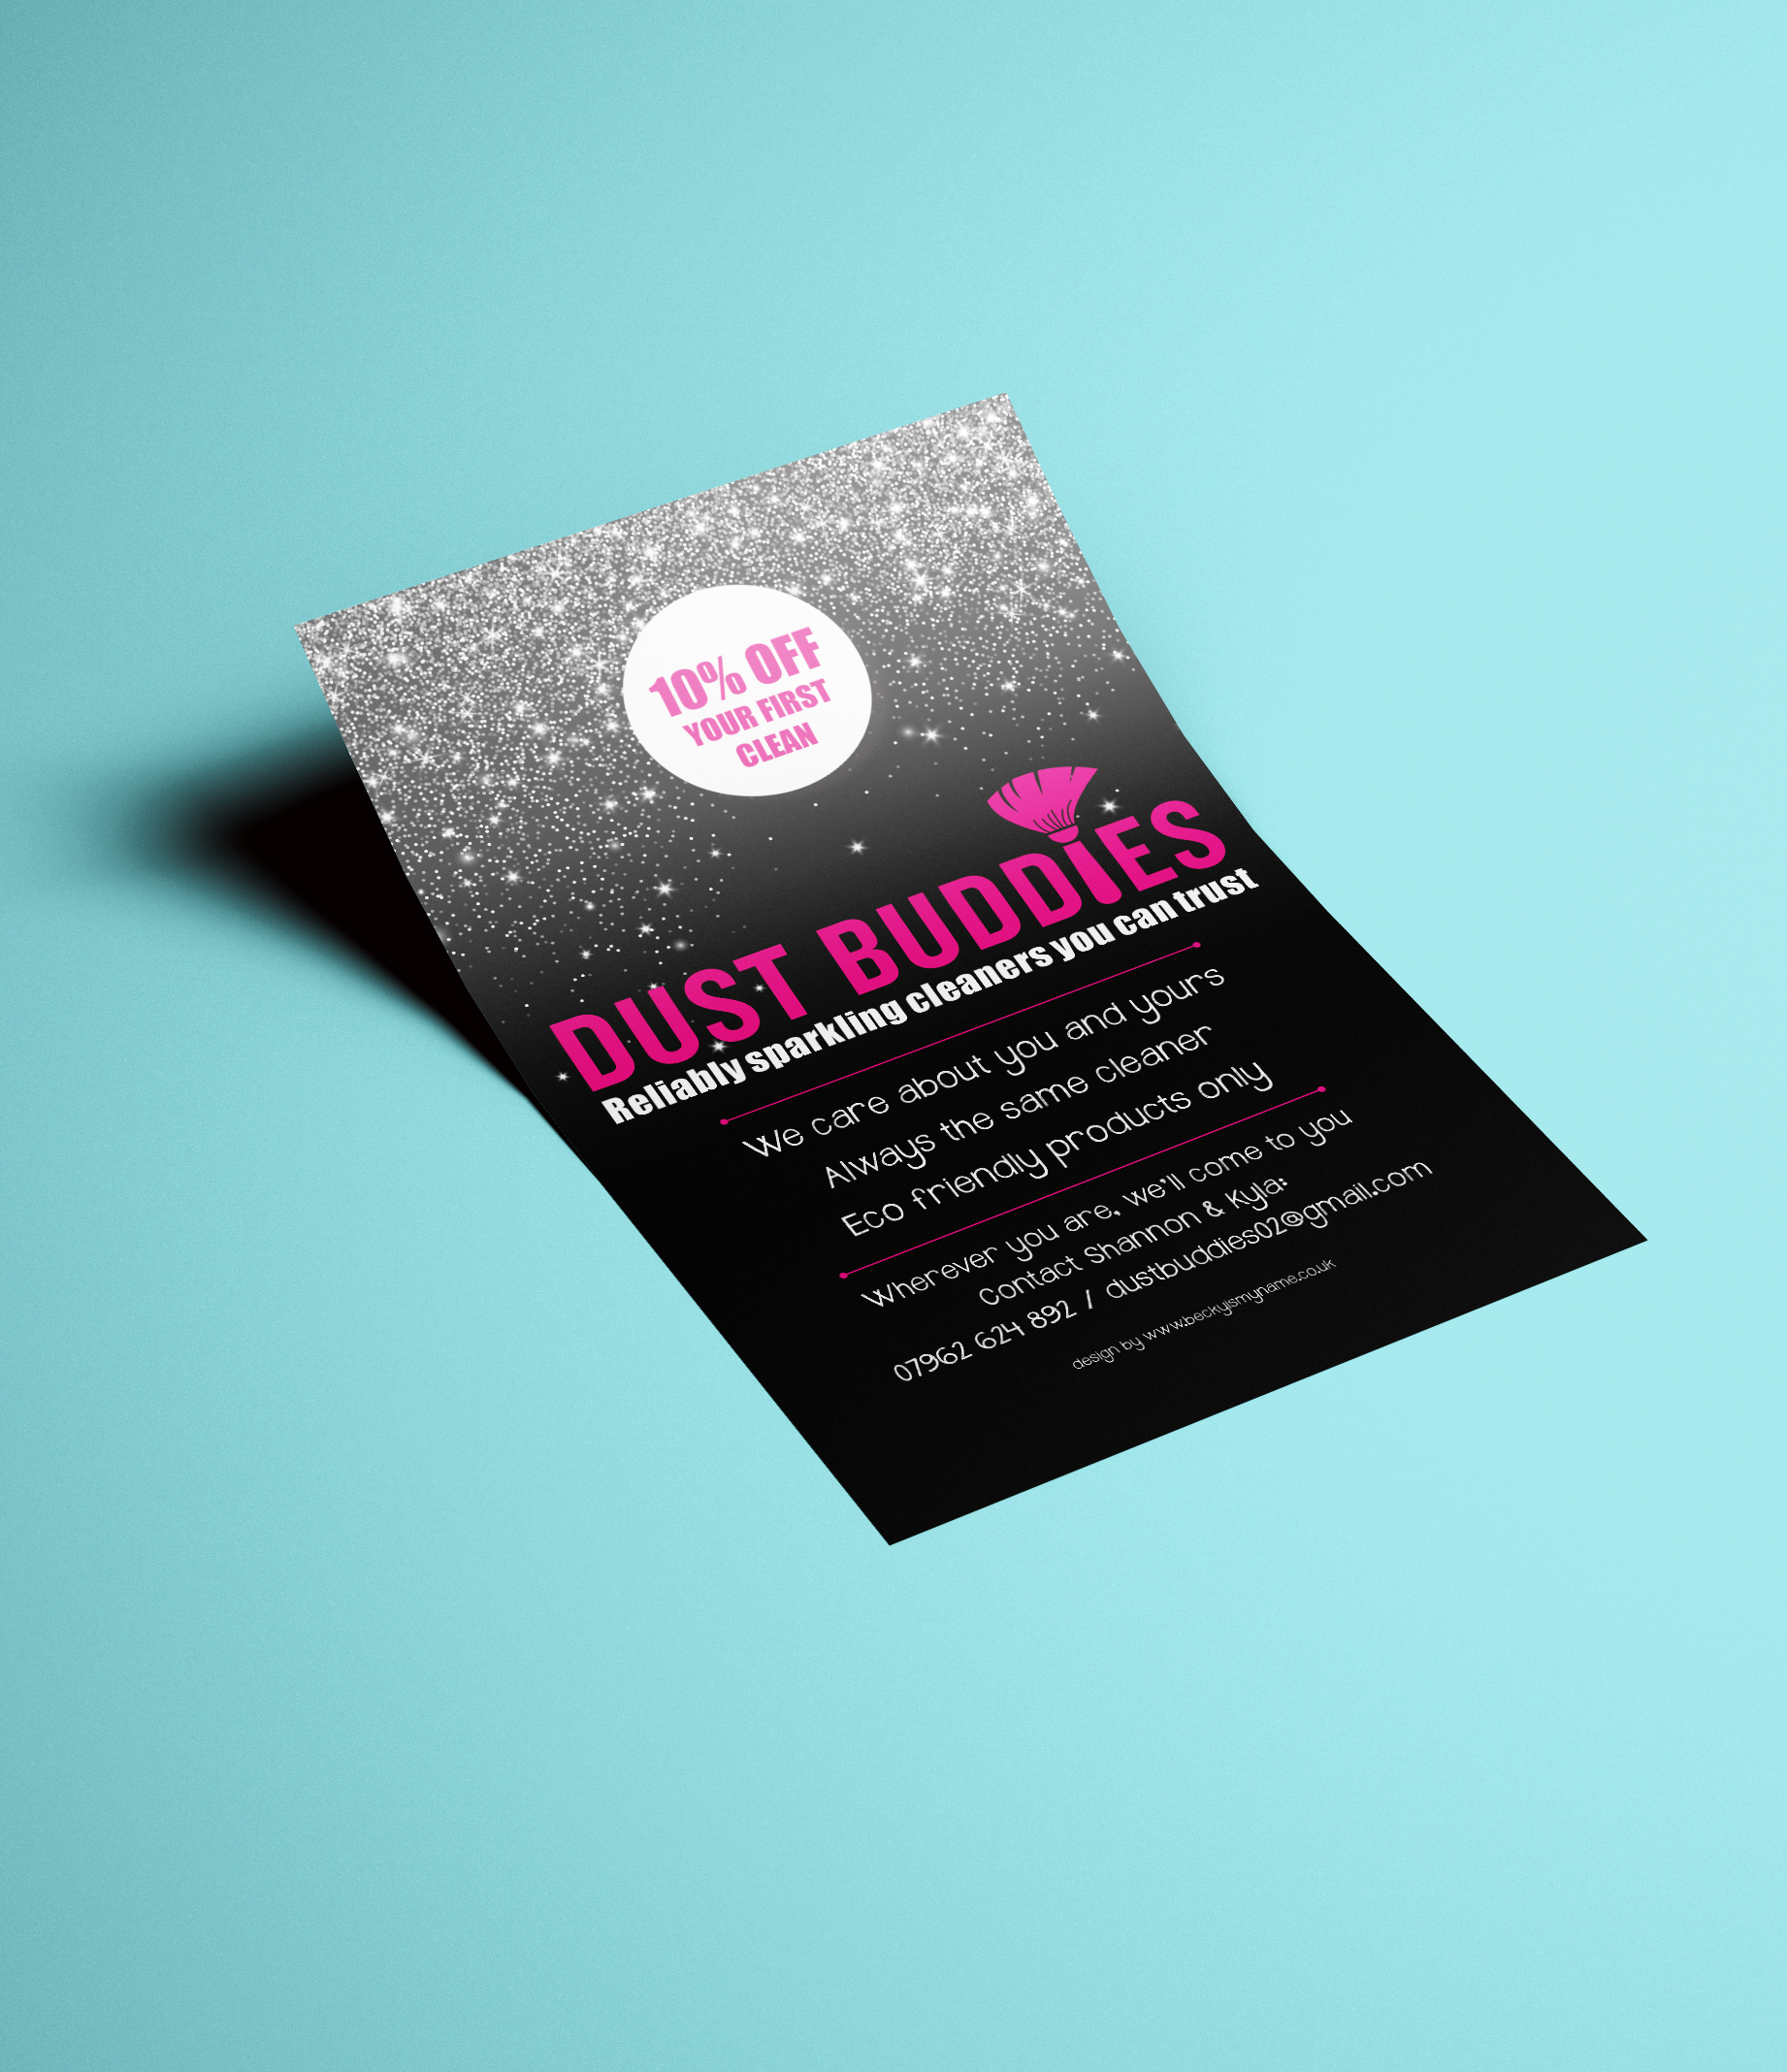 Dust Buddies flyer design